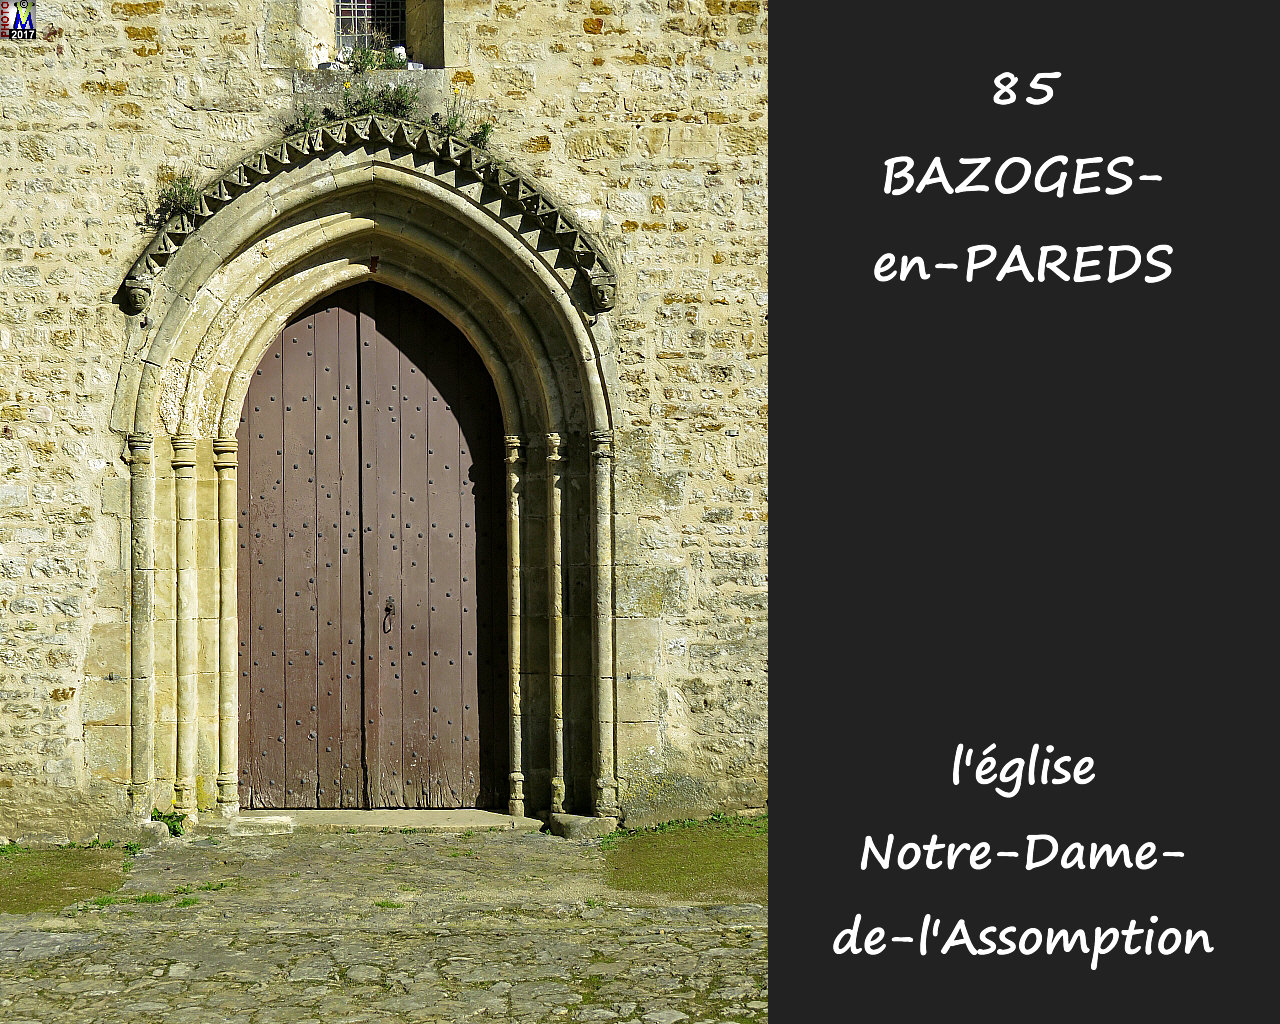 85BAZOGES-PAREDS_eglise_1010.jpg